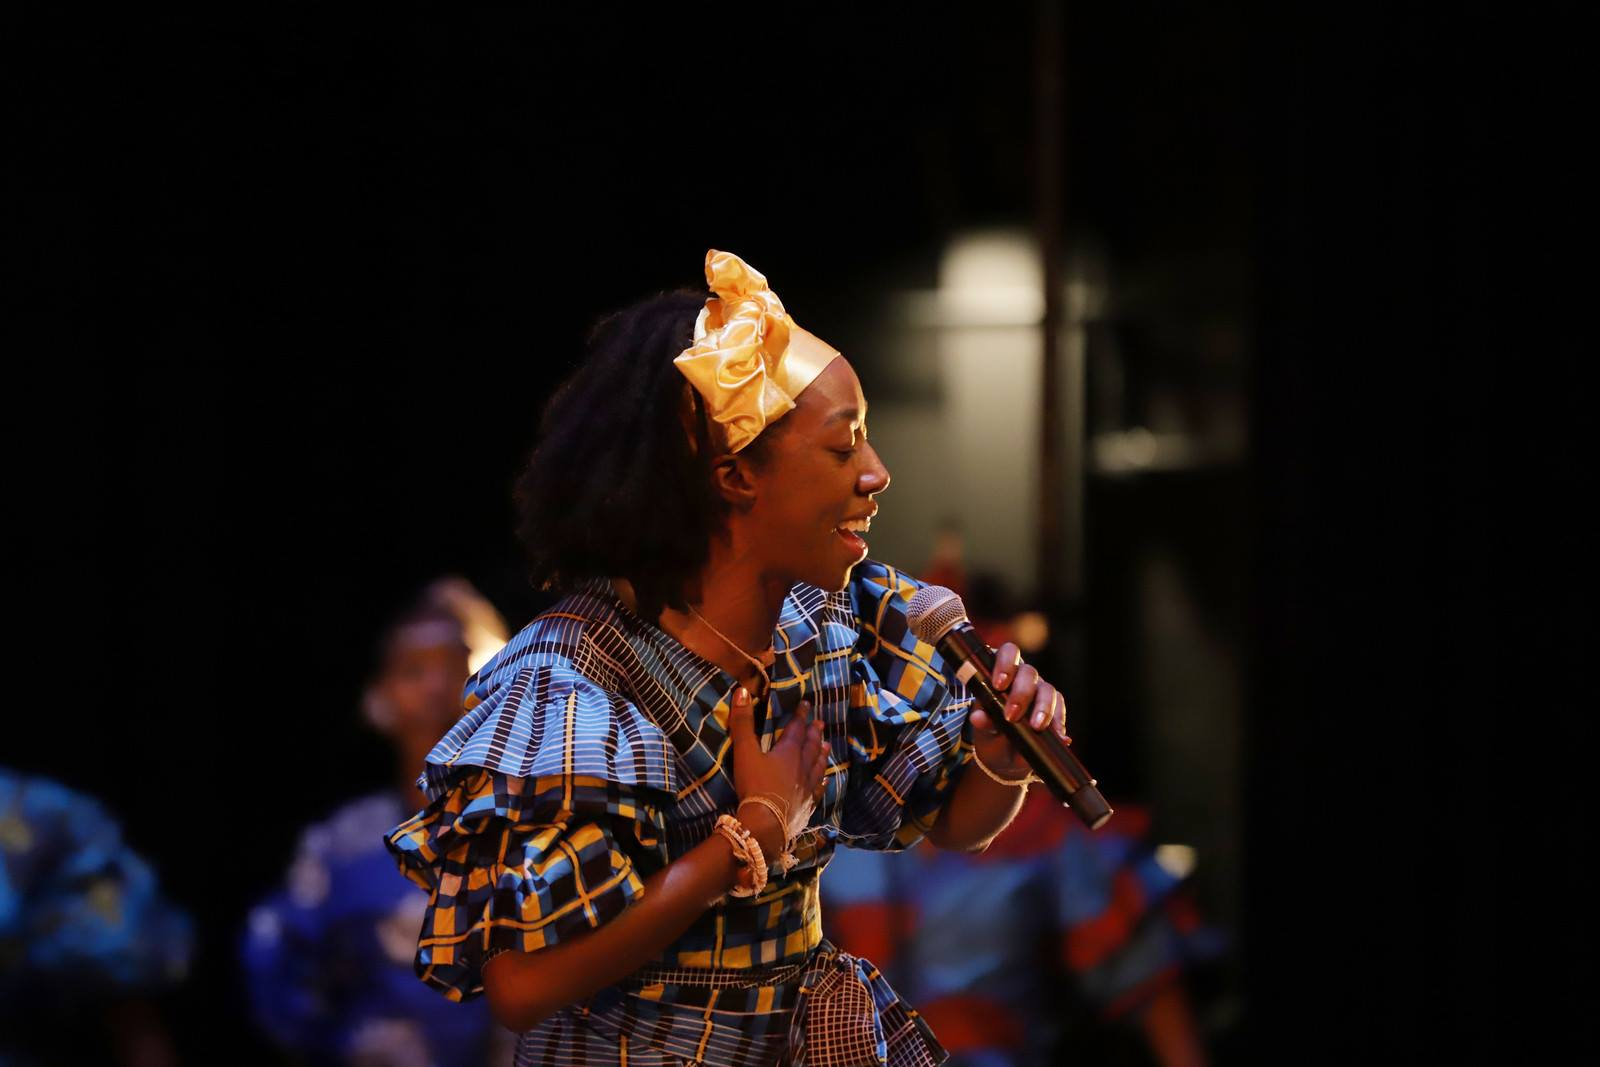 October 4th:West African Vocal/Song Workshop - 8-10 PMLead Singer for world-renown West African Drum and Dance Company Farafina Kan in Washington D.C., Lesina Martin will teach Africa in America's first West African Vocal/Song workshop . All participants will be able to keep a song list and lyrics from these songs.THE NICHOLAS DANCE STUDIO4273 CRENSHAW BLVD., Los Angeles, CA 90008